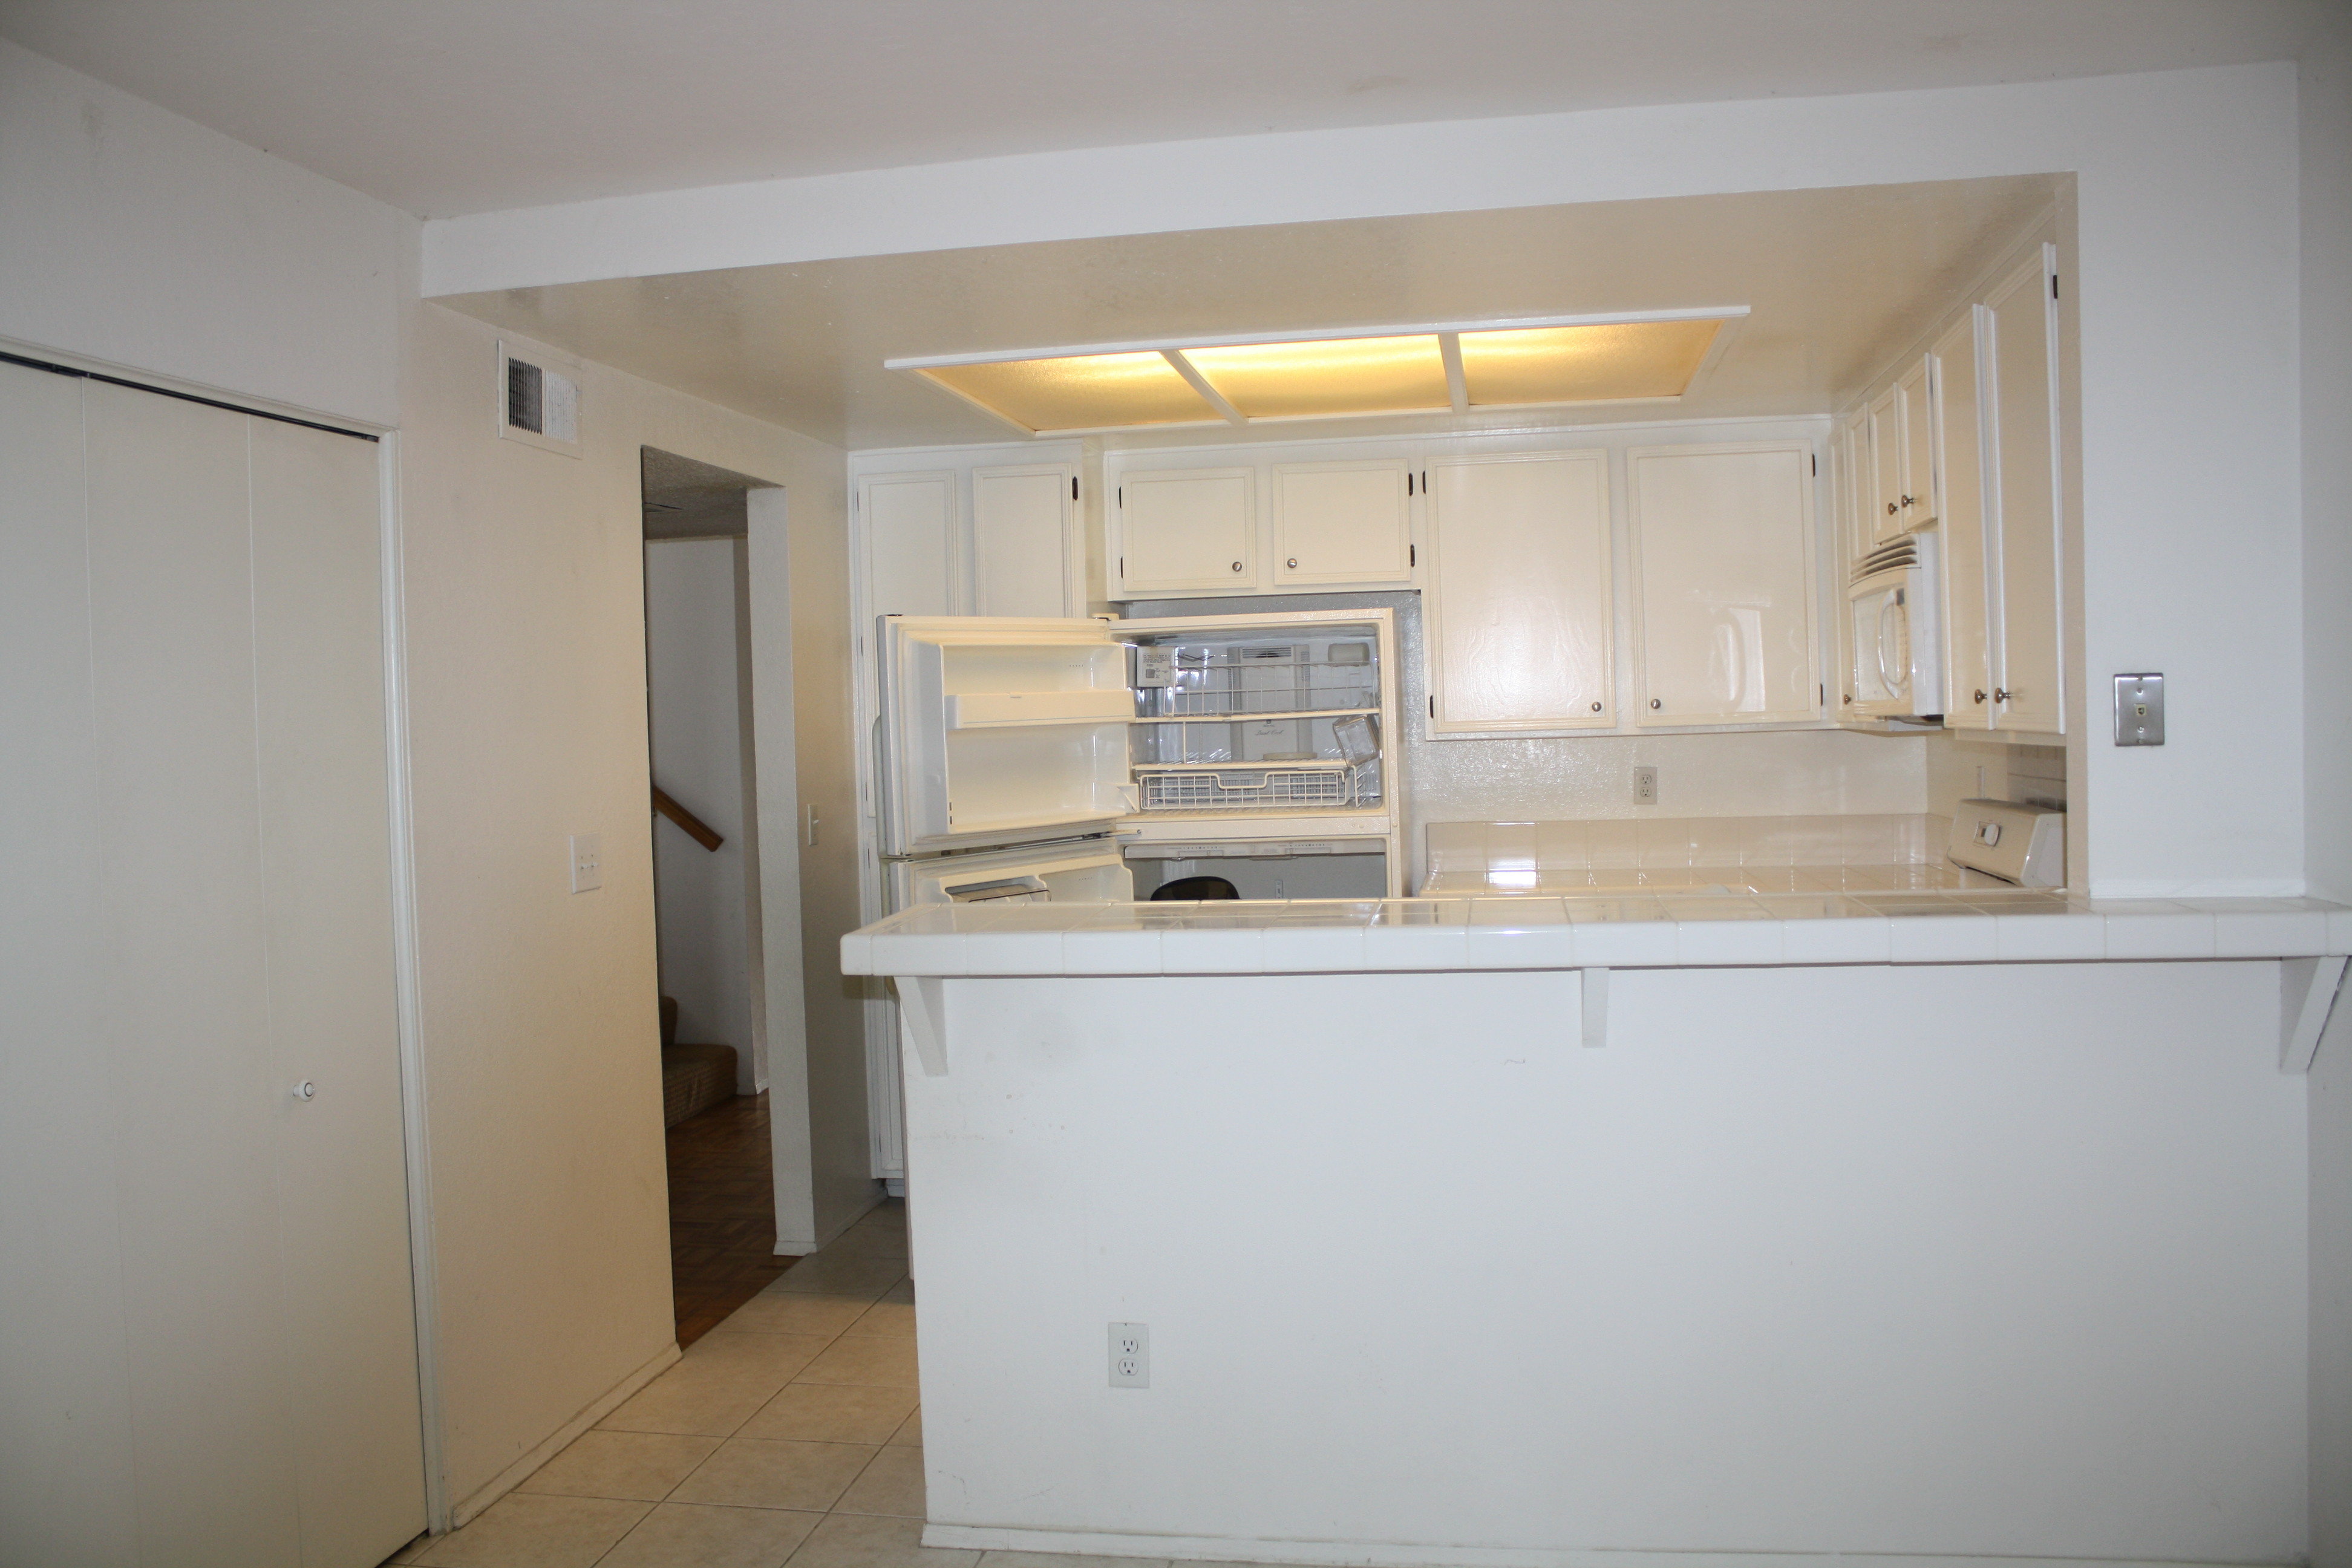 Truly The Kitchen From Hell, Drop Ceiling And All. Just Wait For The New  Kitchen..you Wont Believe Your Eyes.